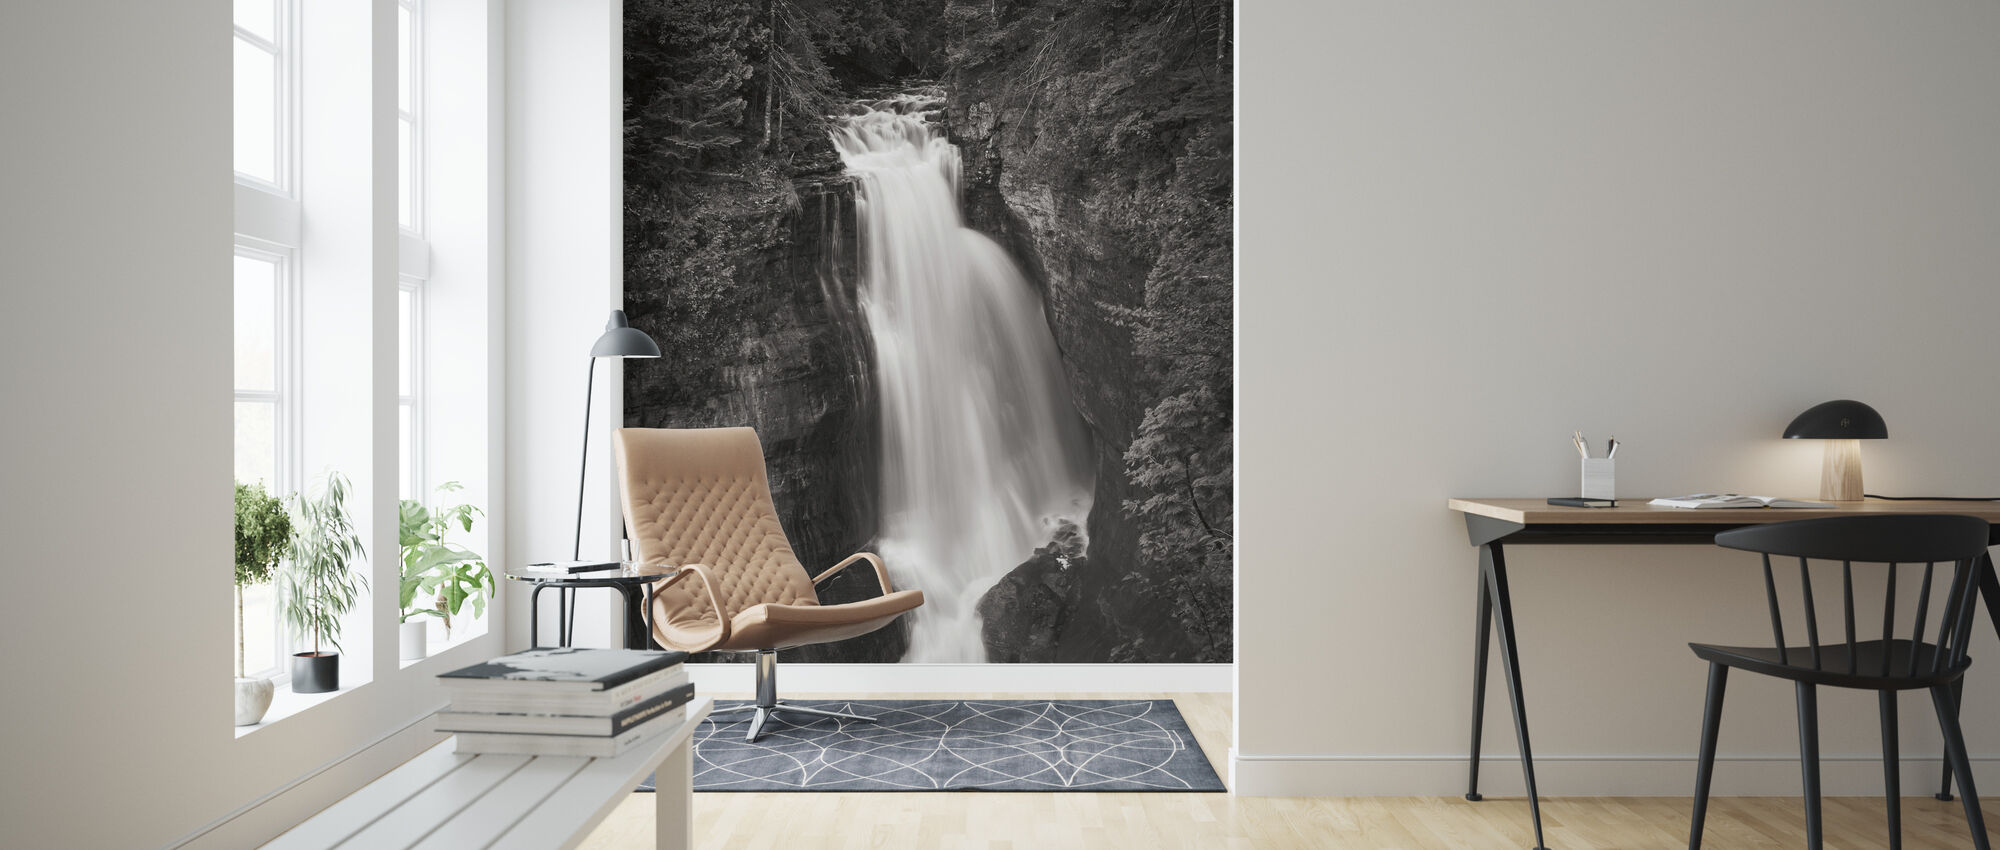 Miners Falls Michigan - Wallpaper - Living Room